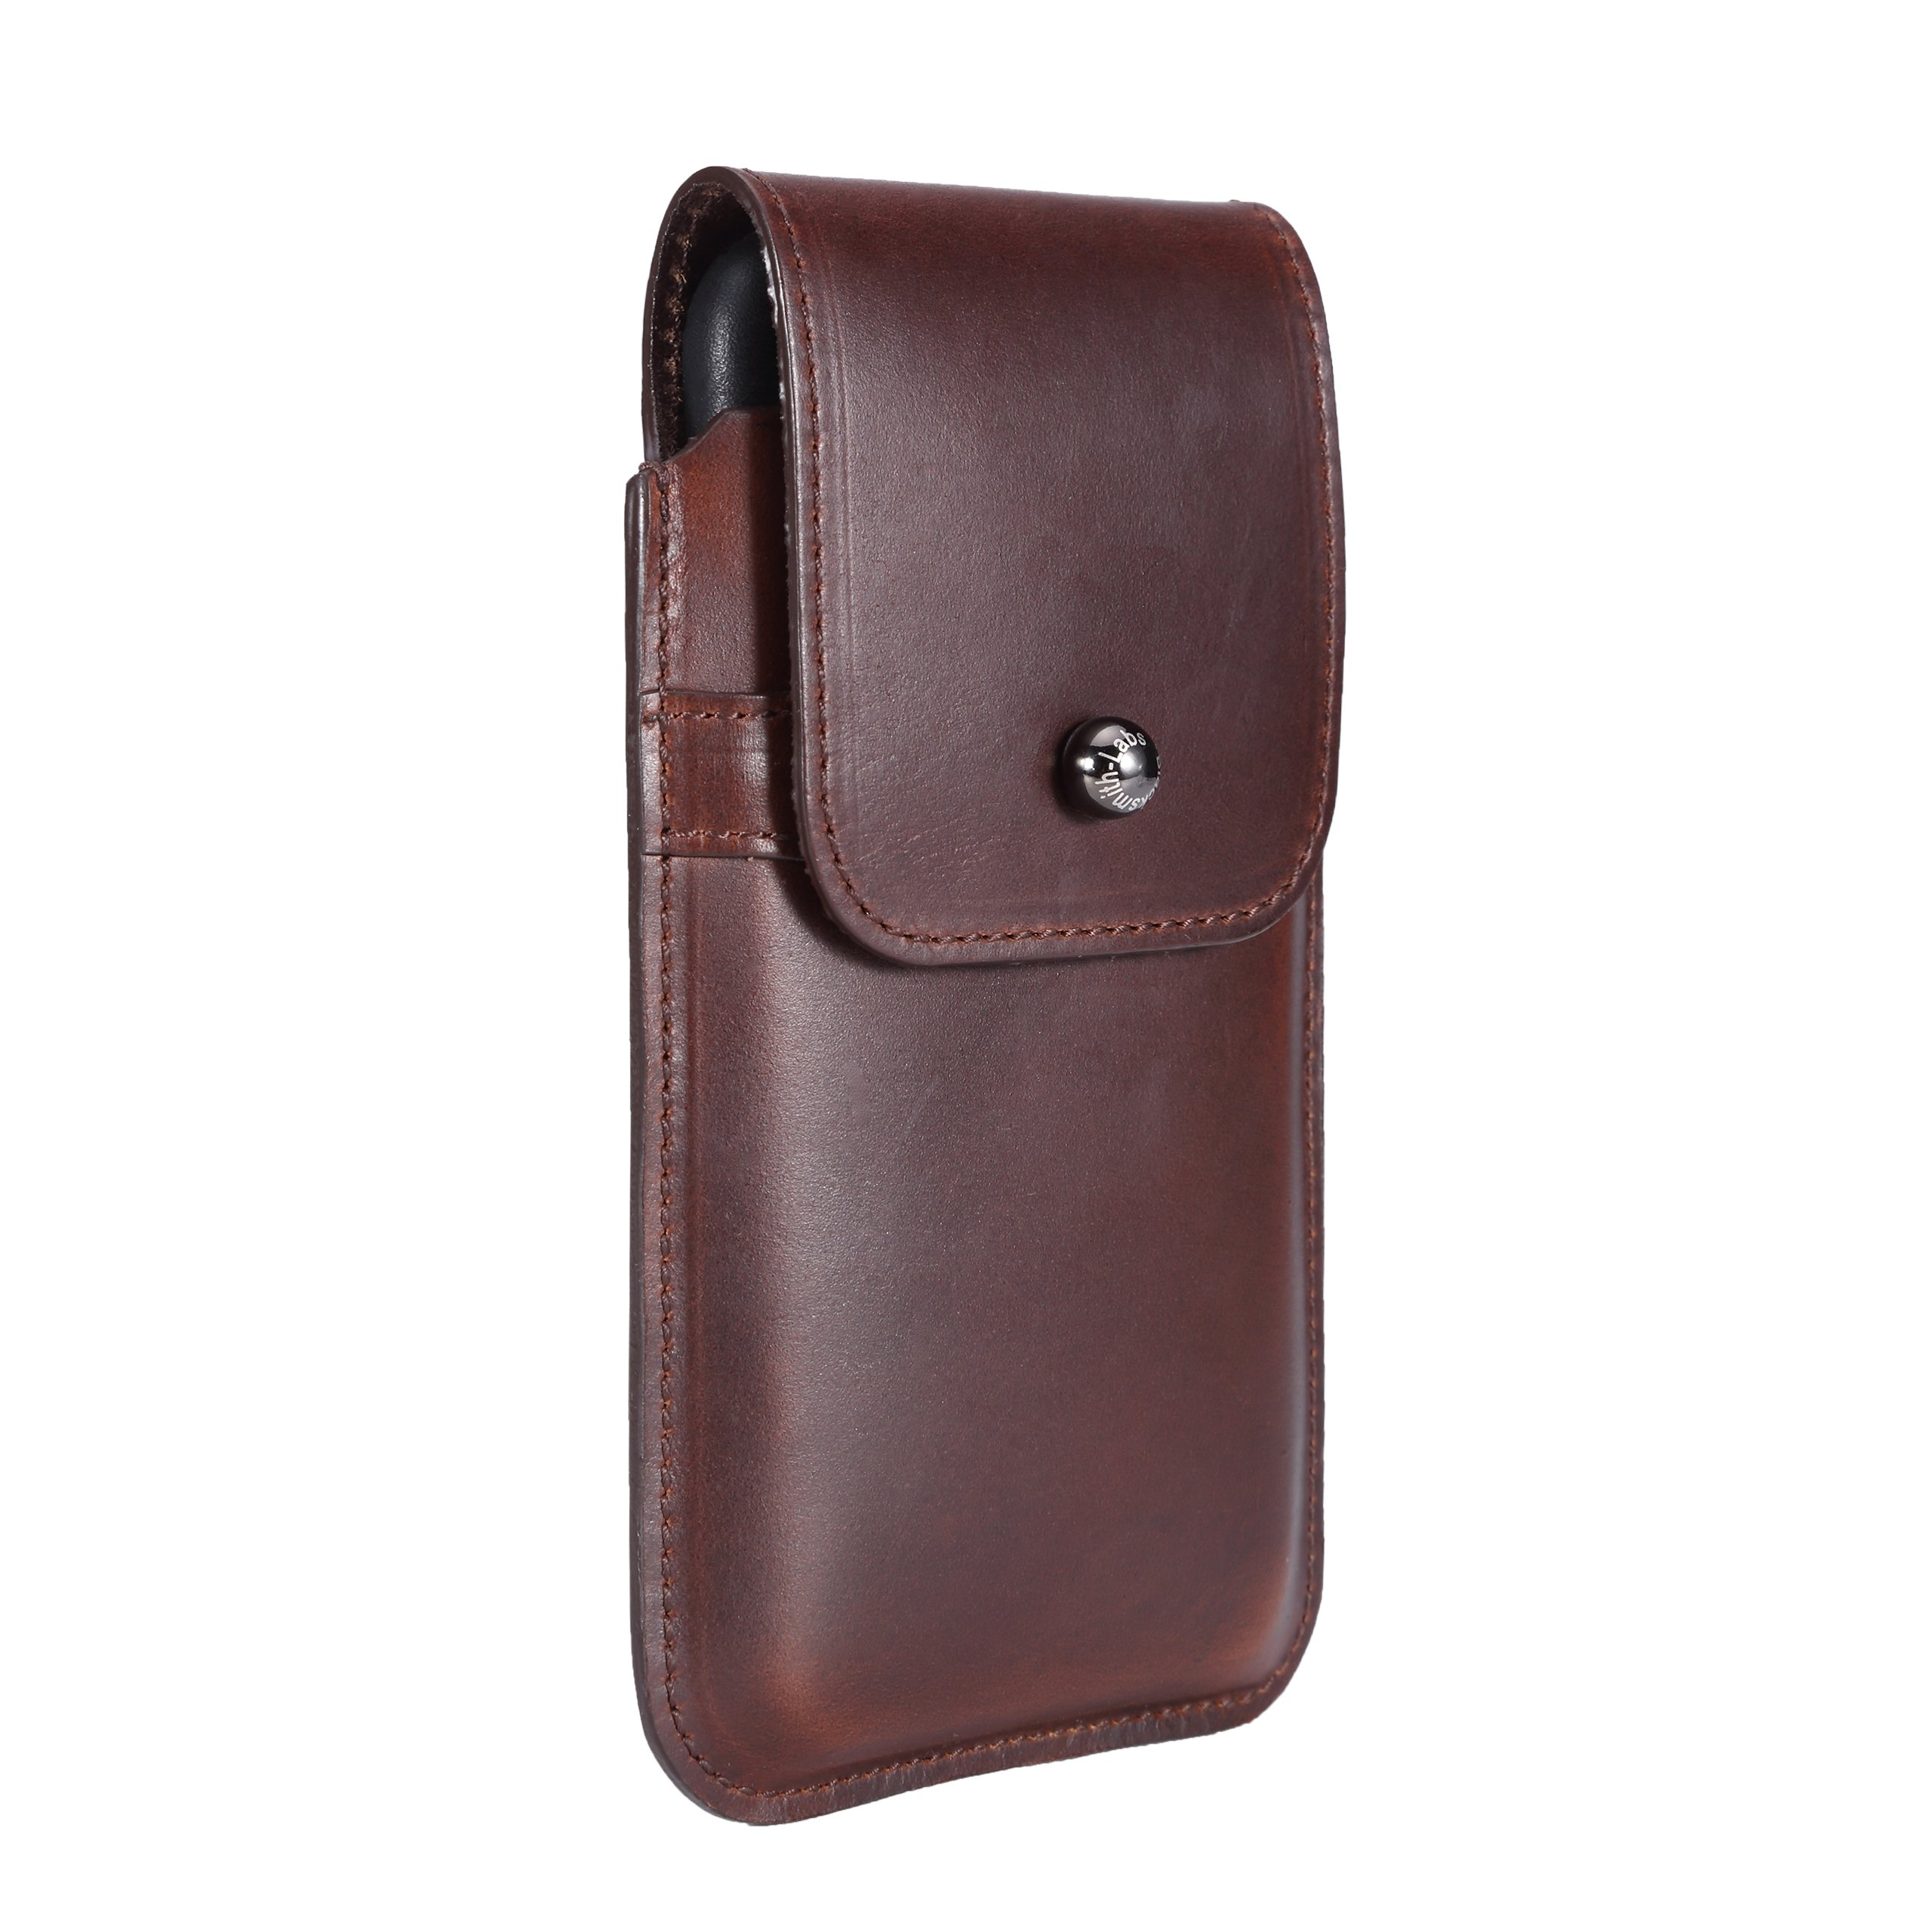 Limited Edition: Blacksmith-Labs Barrett Mezzano 2017 Premium Leather Swivel Belt Clip Holster for Apple iPhone 6/6s/7 for use with Apple Leather Case - Horween Chromexcel Havana Brown/Gunmetal Clip